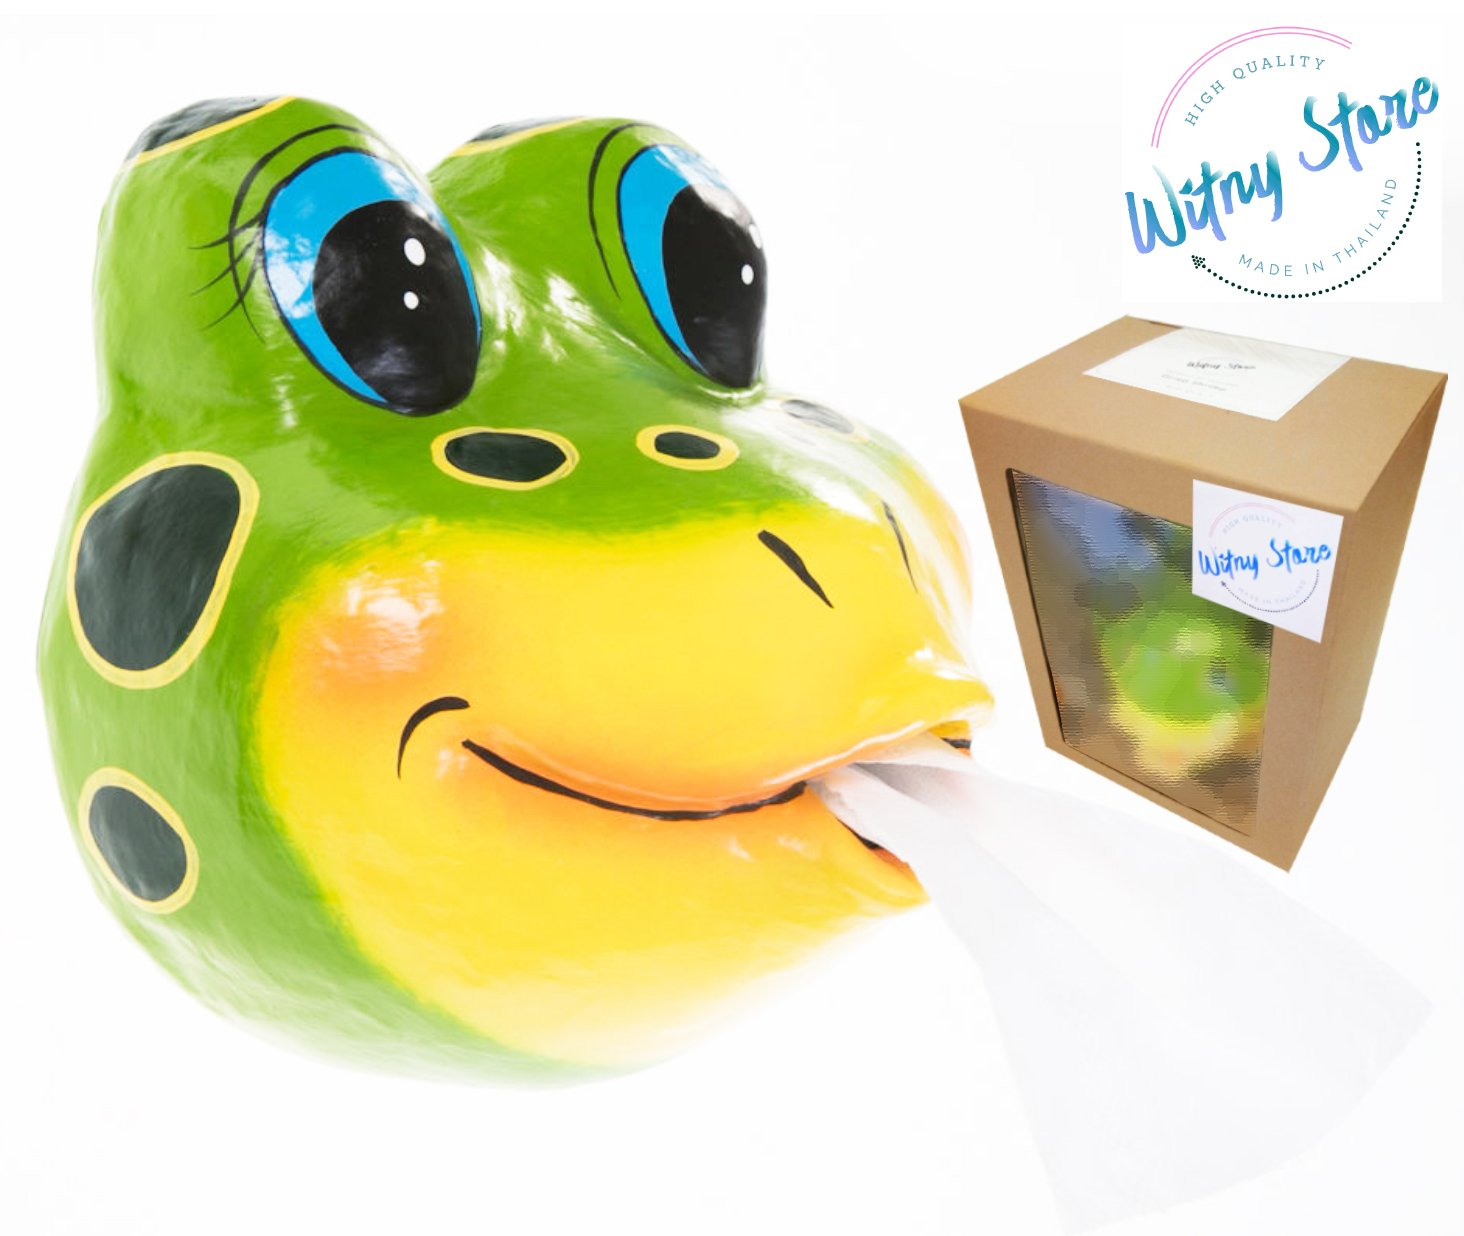 WitnyStore Toilet paper Frog wildlife zoo Holder Tissue bathroom paper Mache holding roll kids handmade craft home decorations idea DIY animals